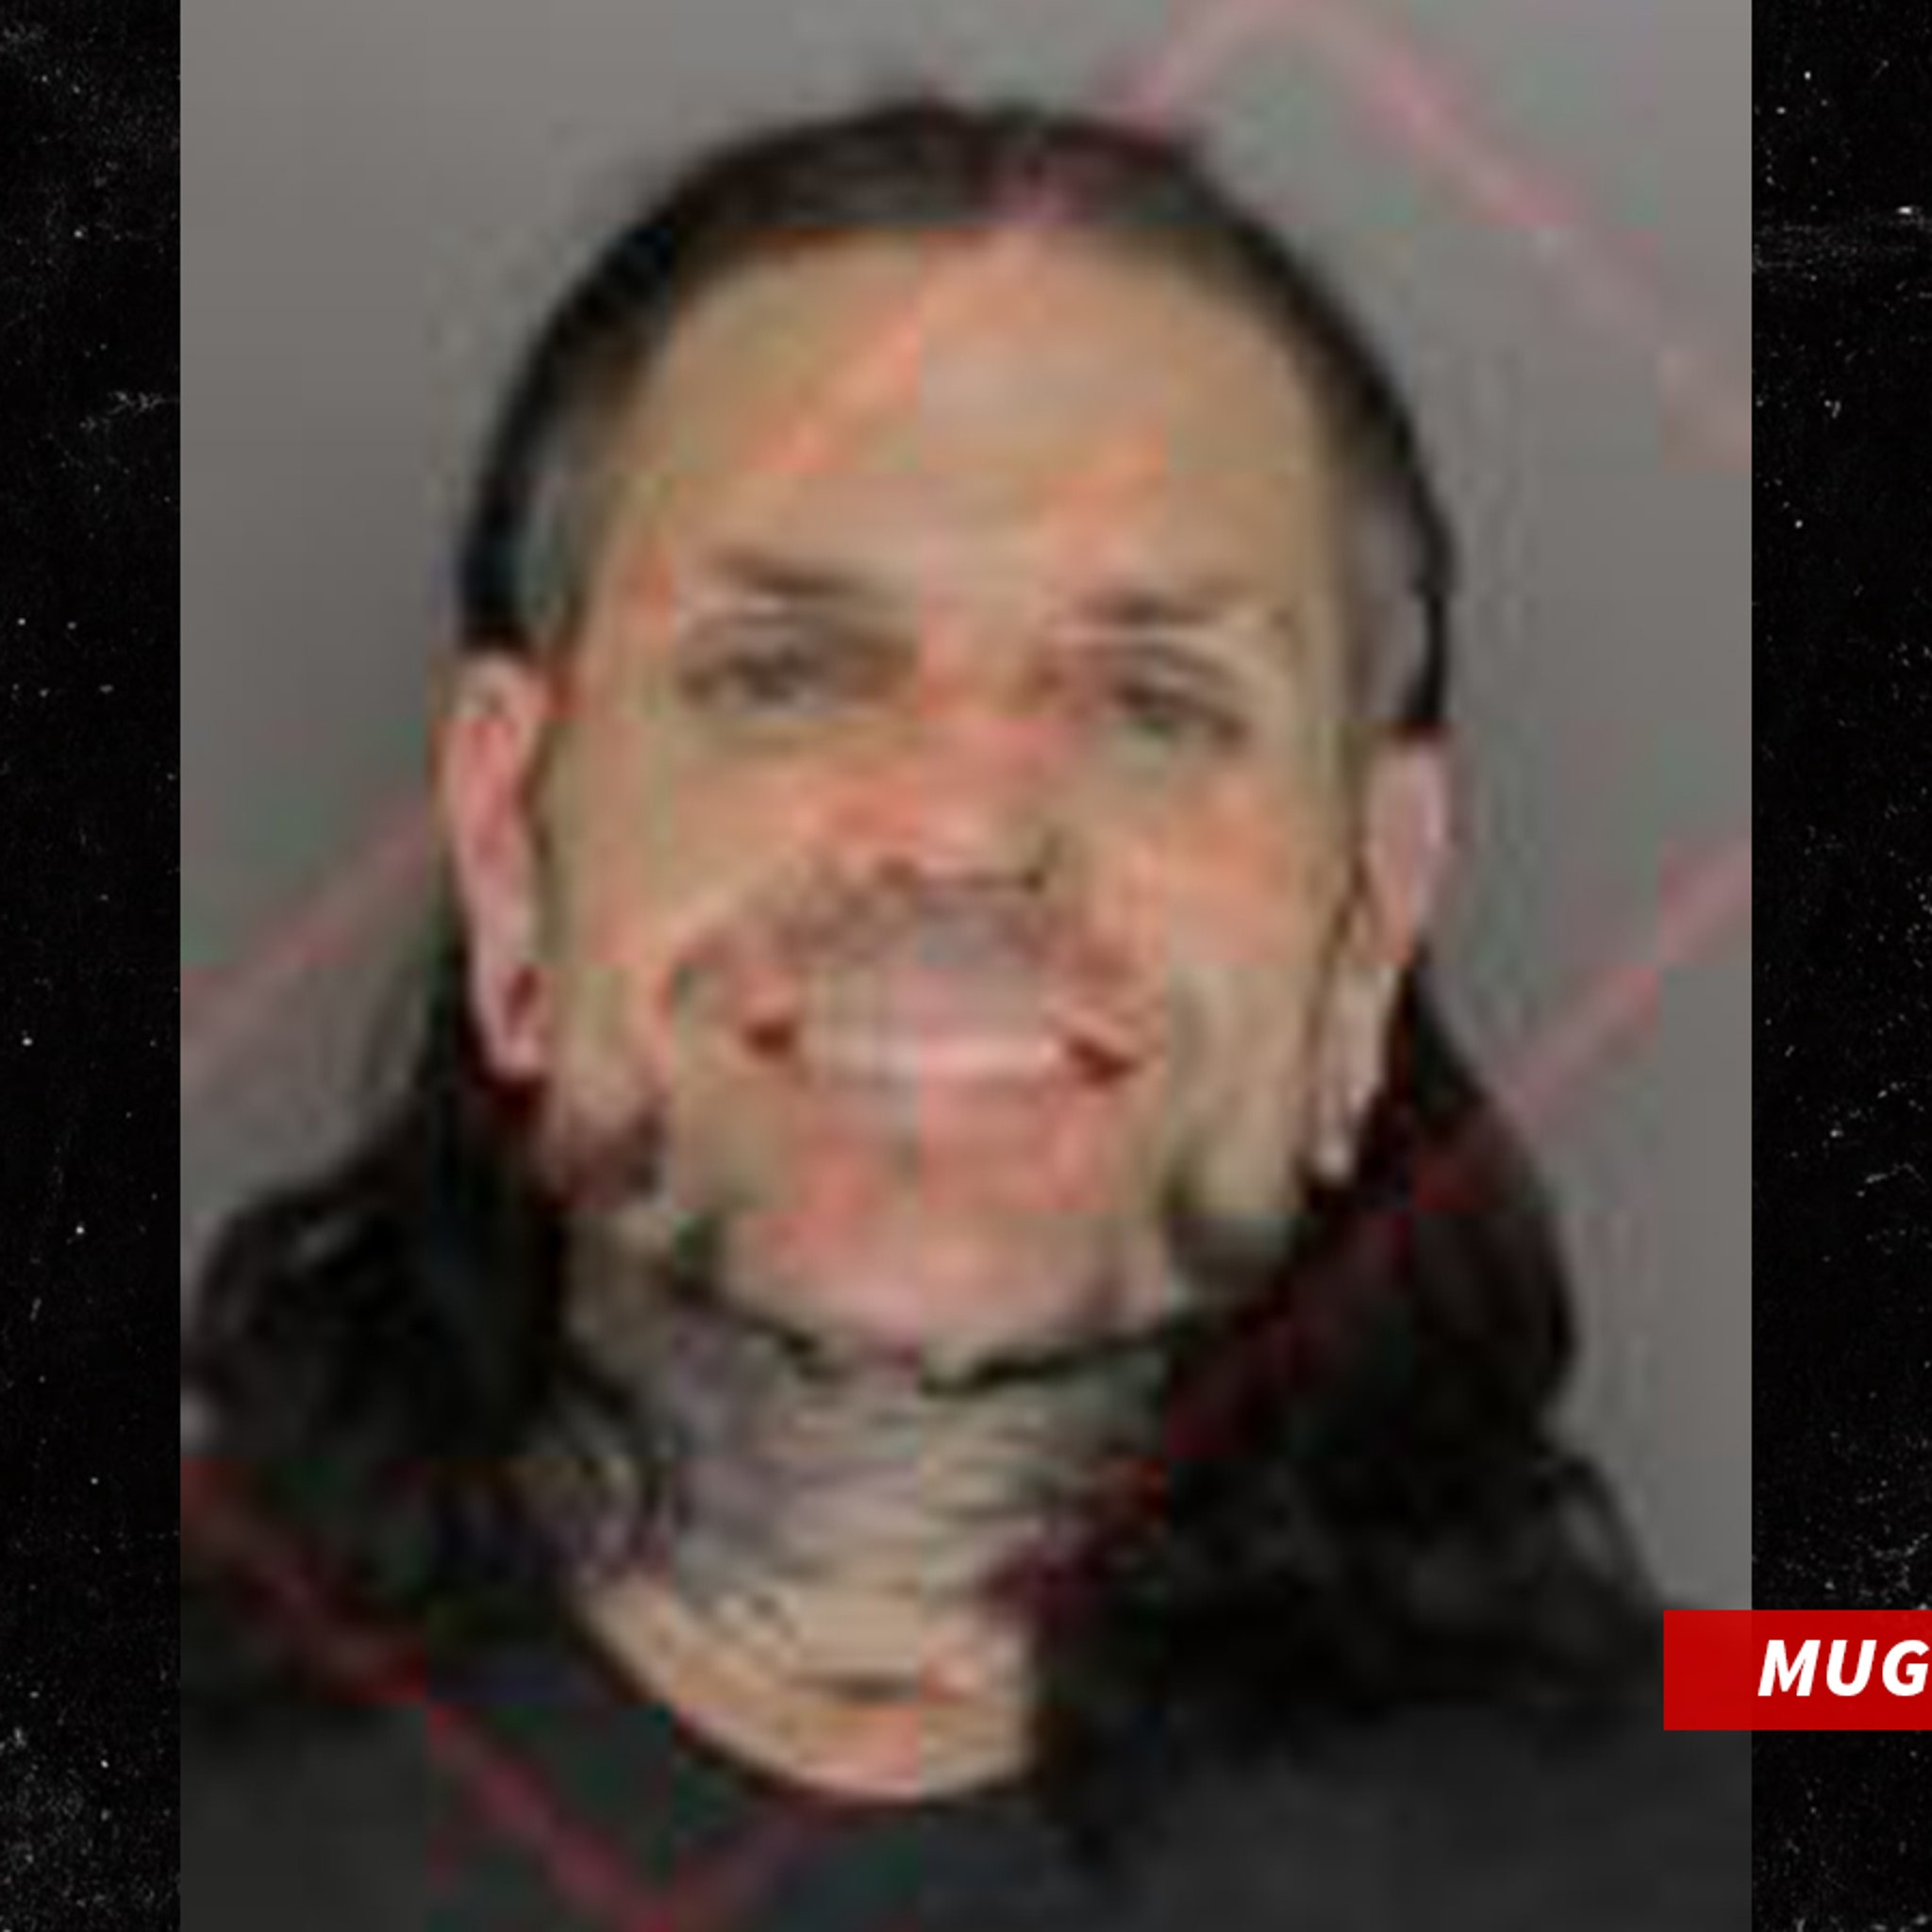 WWE Wrestler Jeff Hardy Arrested for DWI